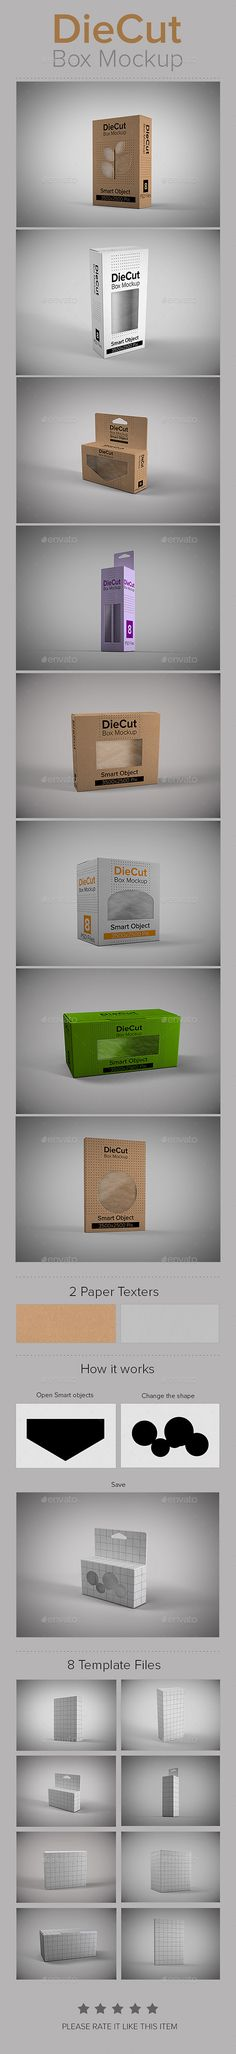 DieCut Box Mockup | #boxmockup | Download: http://graphicriver.net/item/diecut-box-mockup/9083428?ref=ksioks